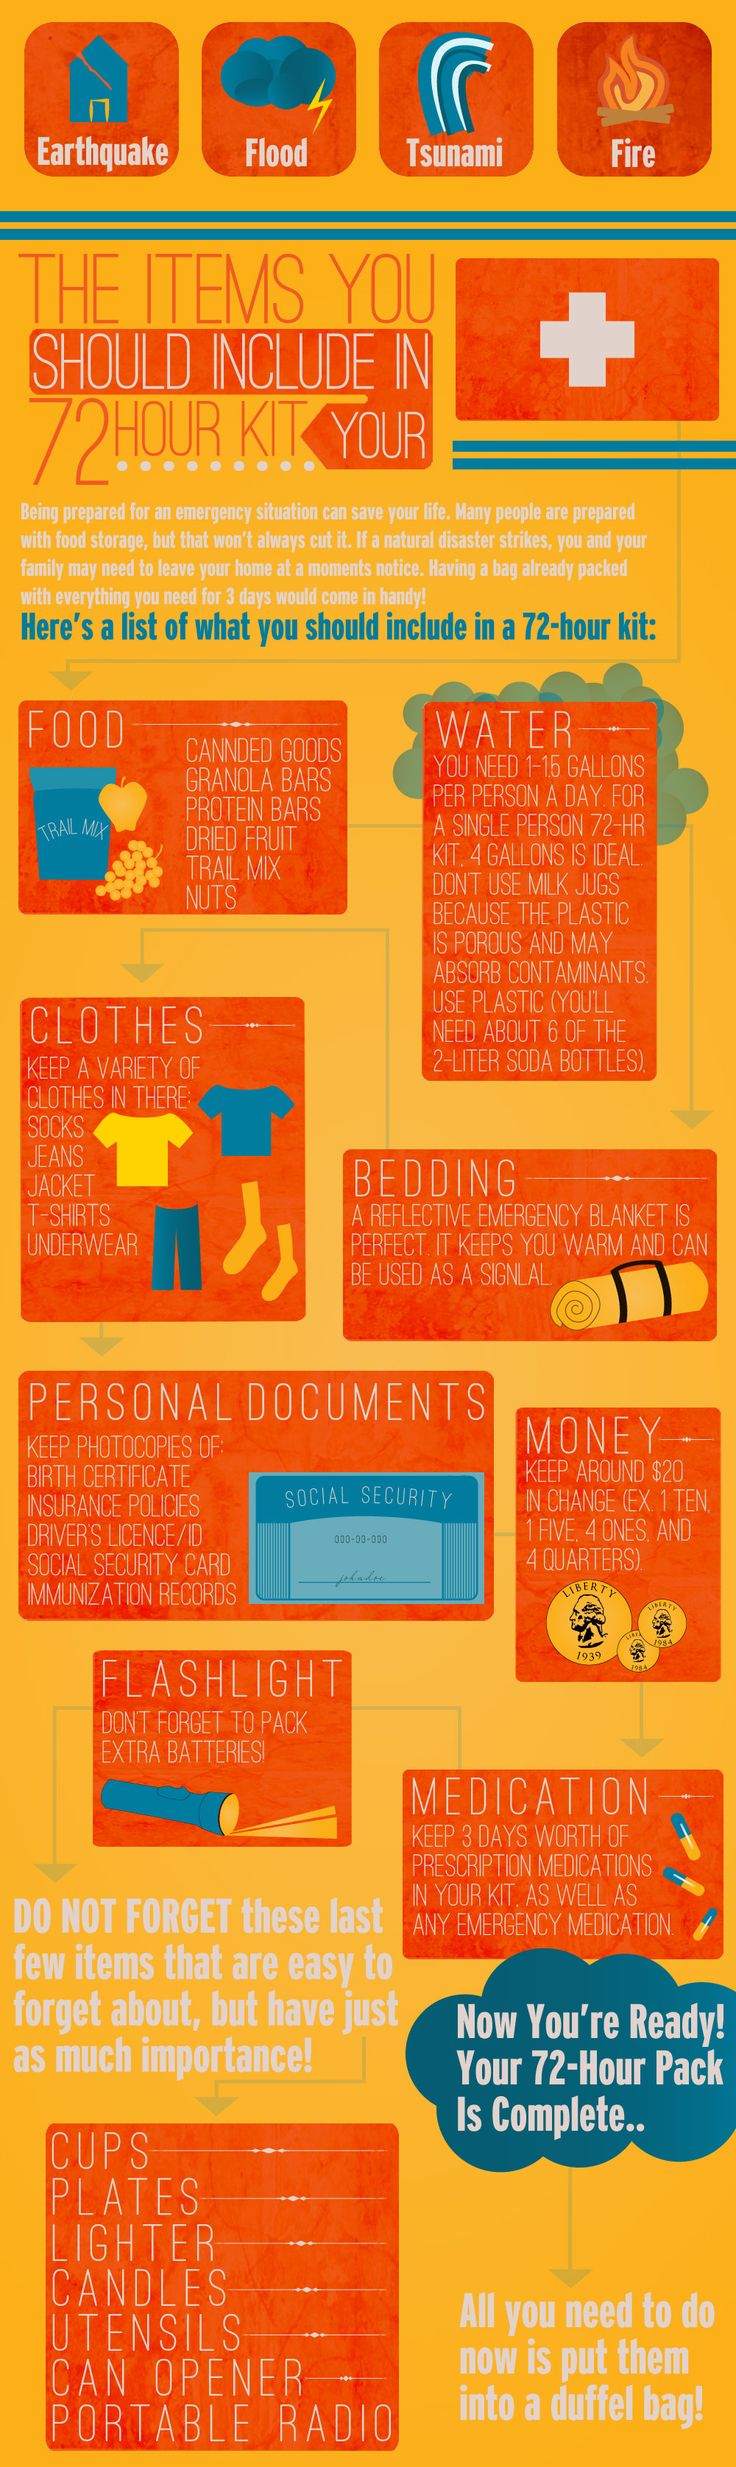 The items you should include in your 72 hour emergency kit.